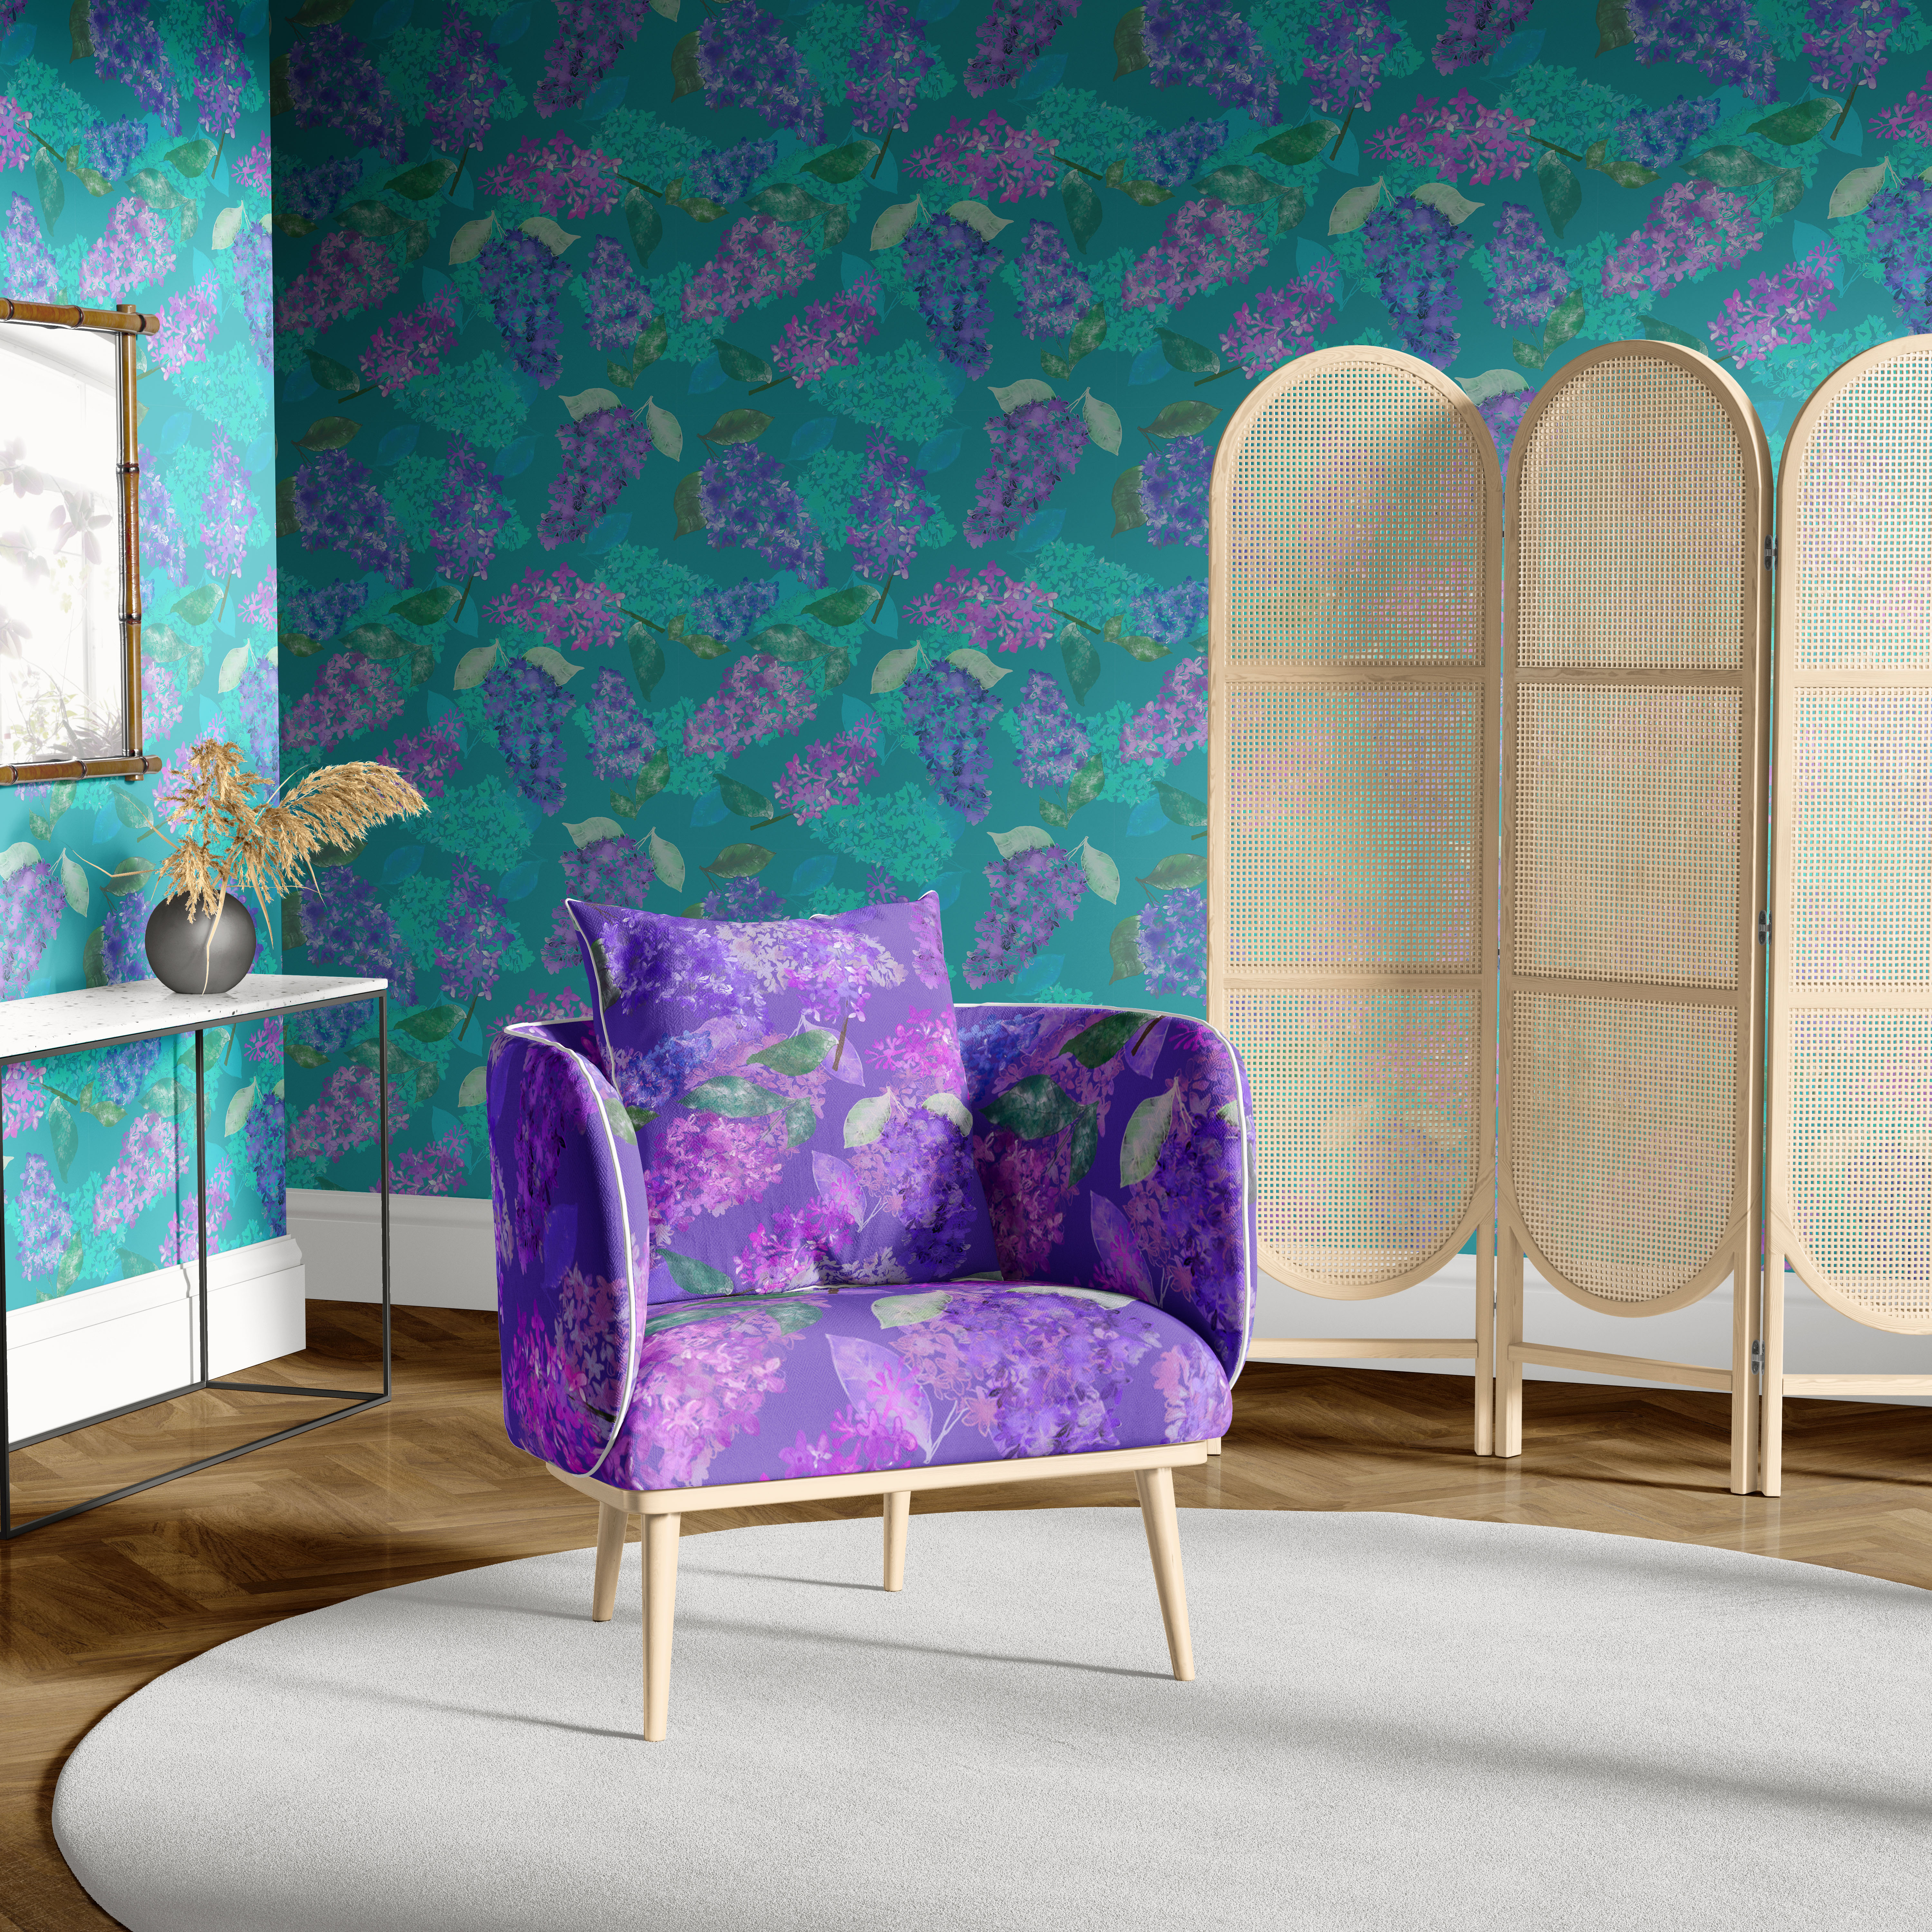 LILAC GARDEN in turquioise wallpaper